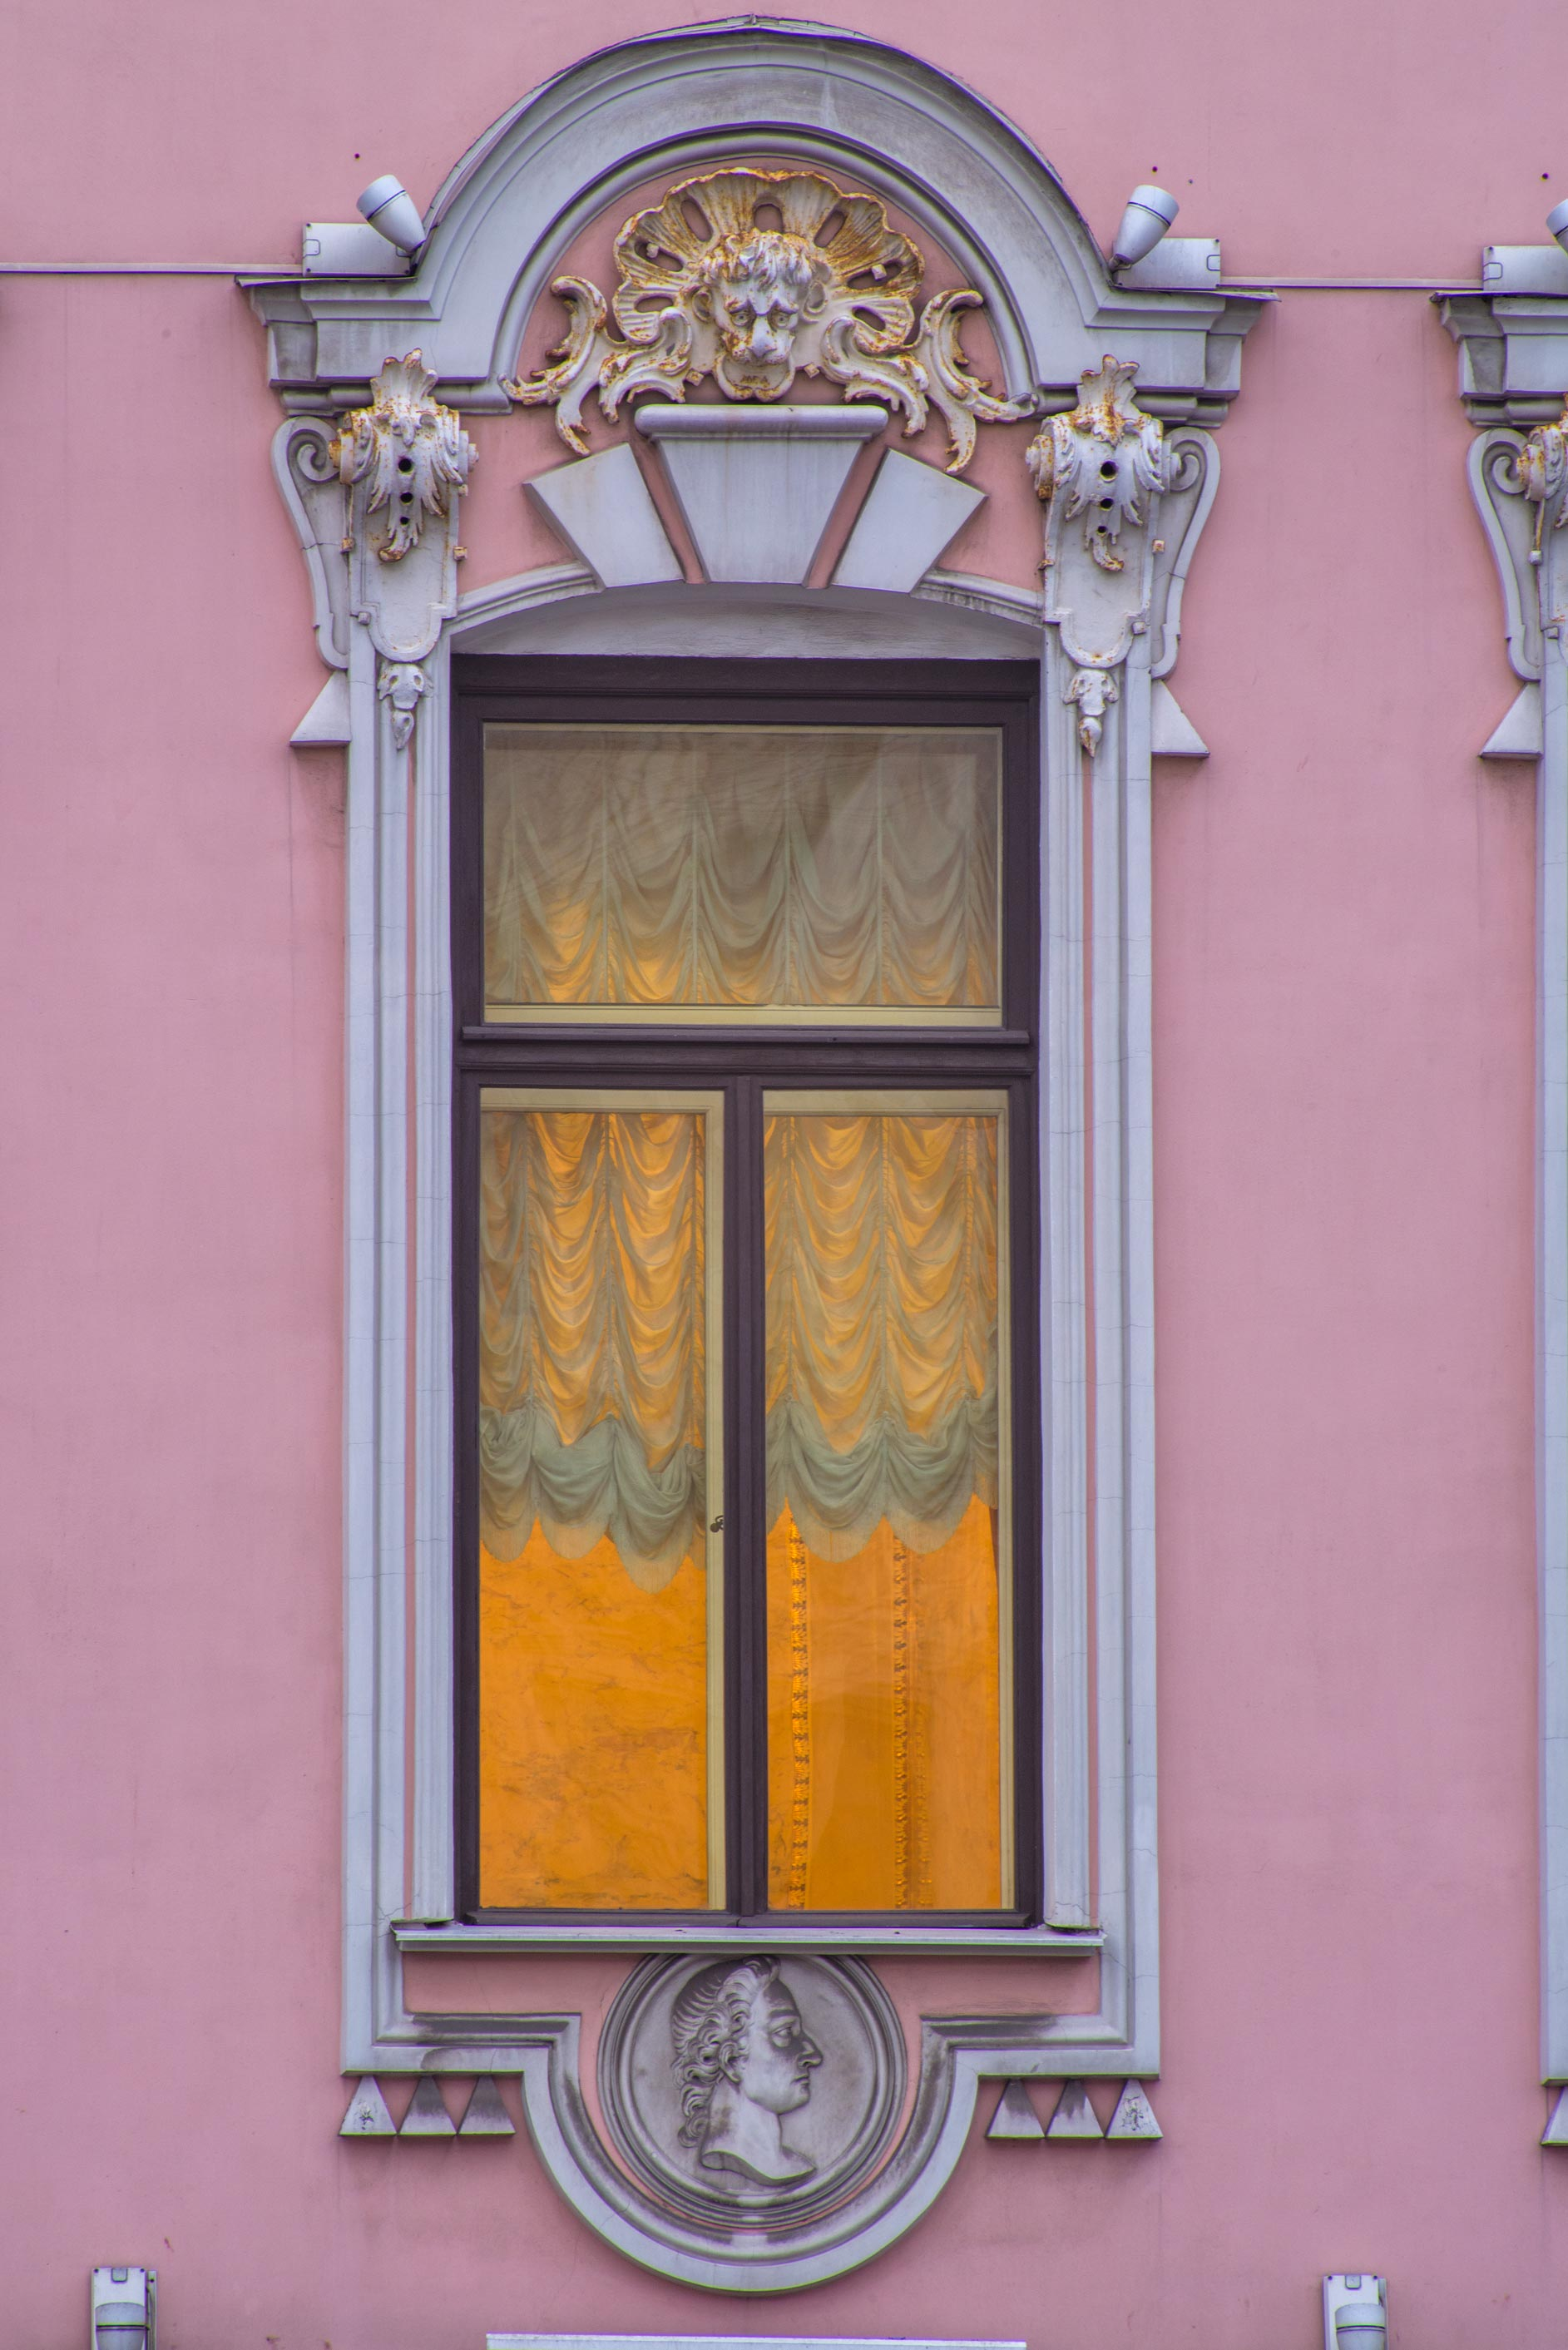 Window of Stroganov Palace near Moyka Rive on Nevsky Palace. St.Petersburg, Russia